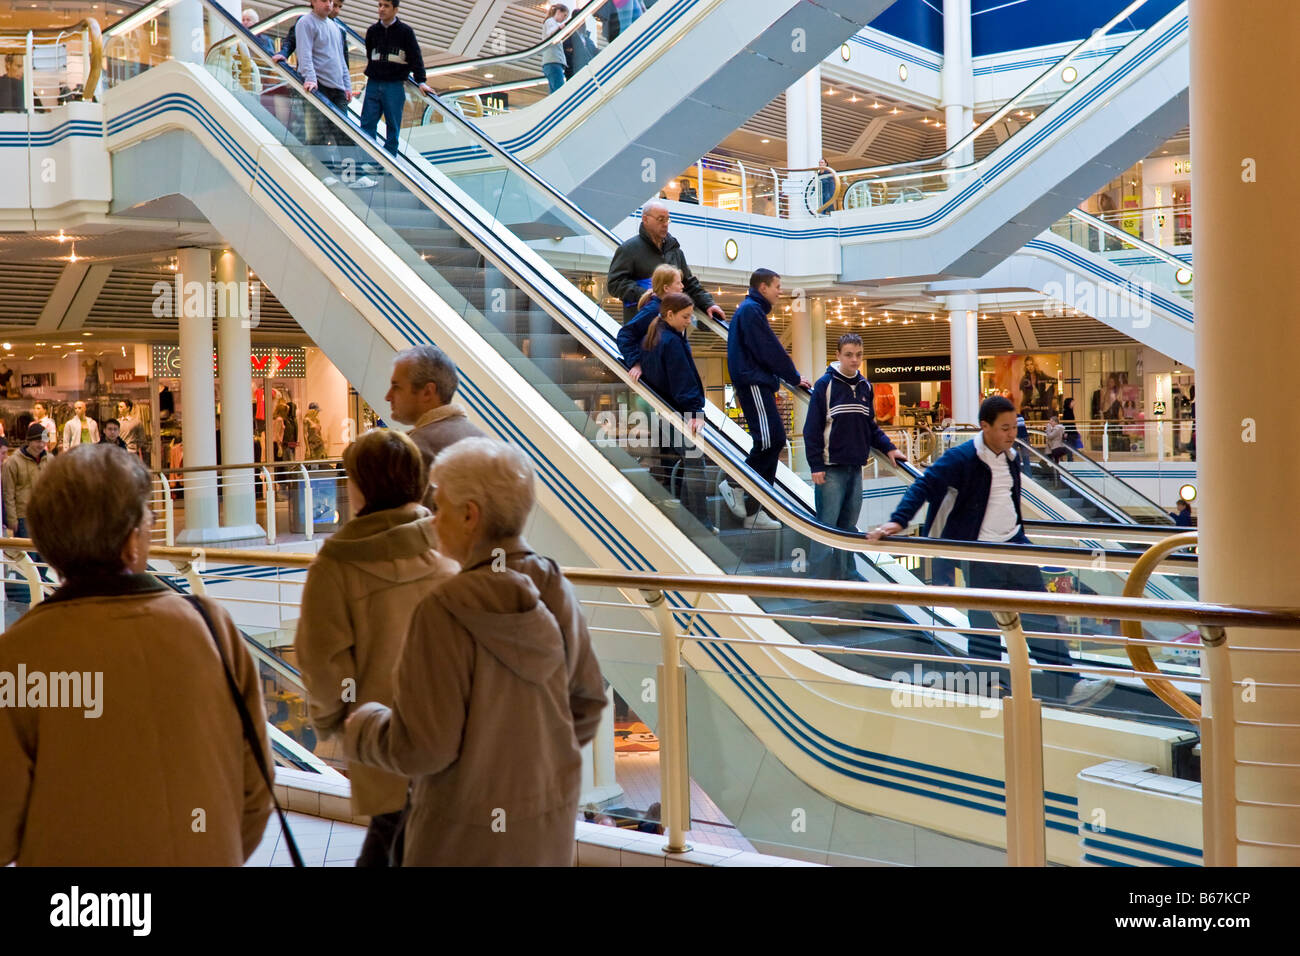 Interior of Princes Quay shopping mall, shopping centre Uk, Hull, East Yorkshire, England - Stock Image